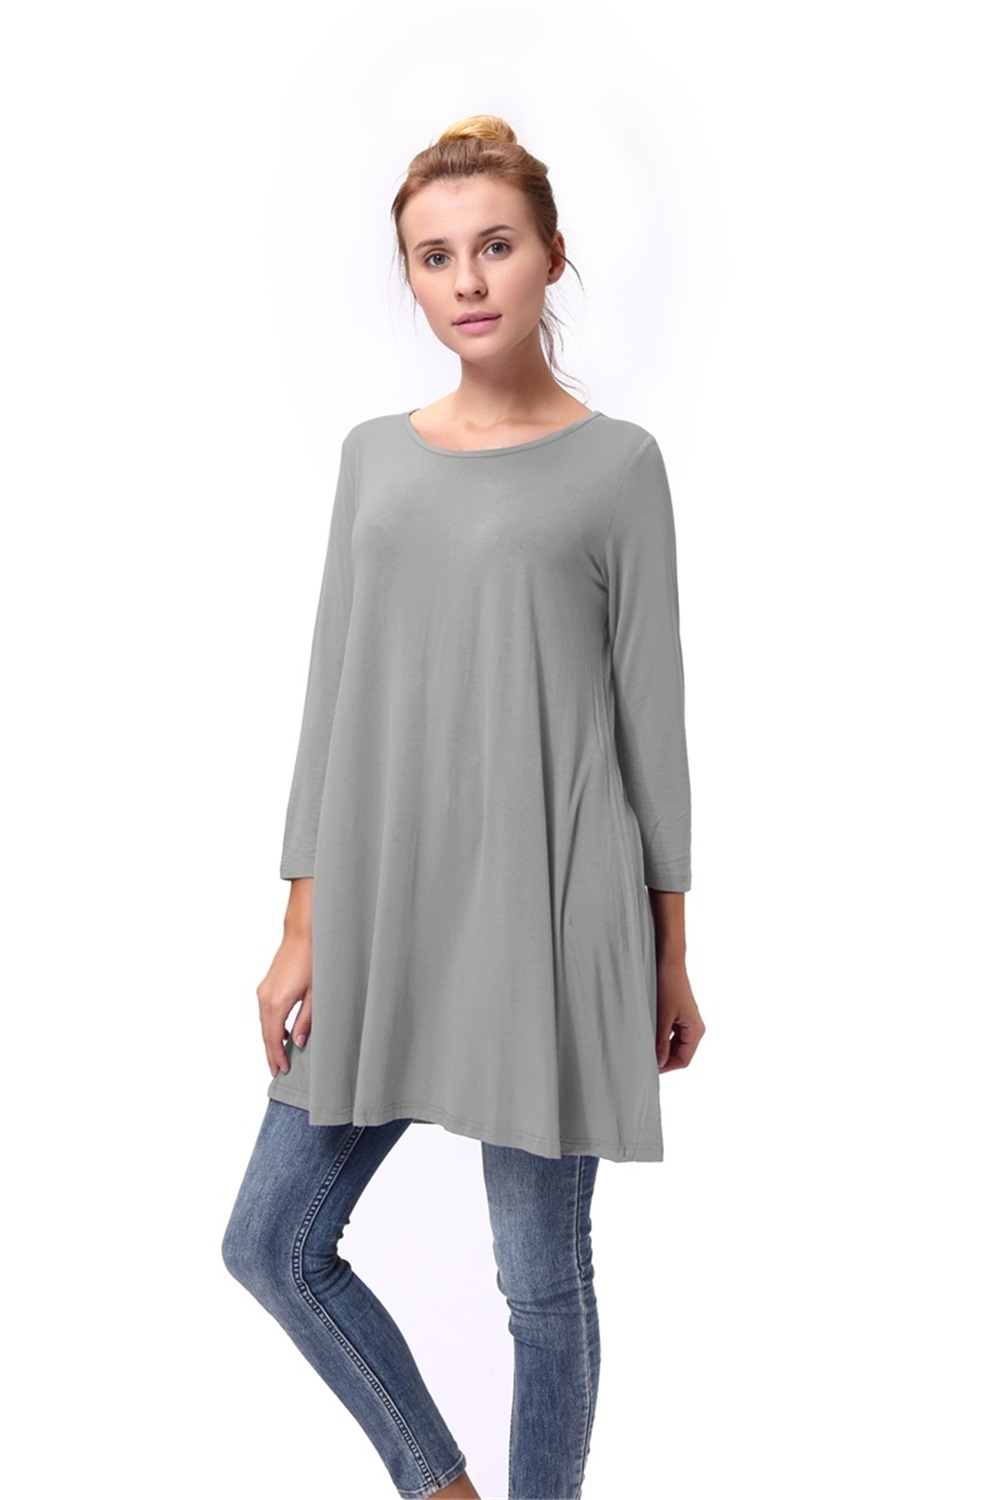 Women-039-s-Long-Tunic-Top-3-4-Sleeve-Dolman-Boat-Neck-USA-Dress-S-M-L-1X-2X-3X-PLUS thumbnail 34